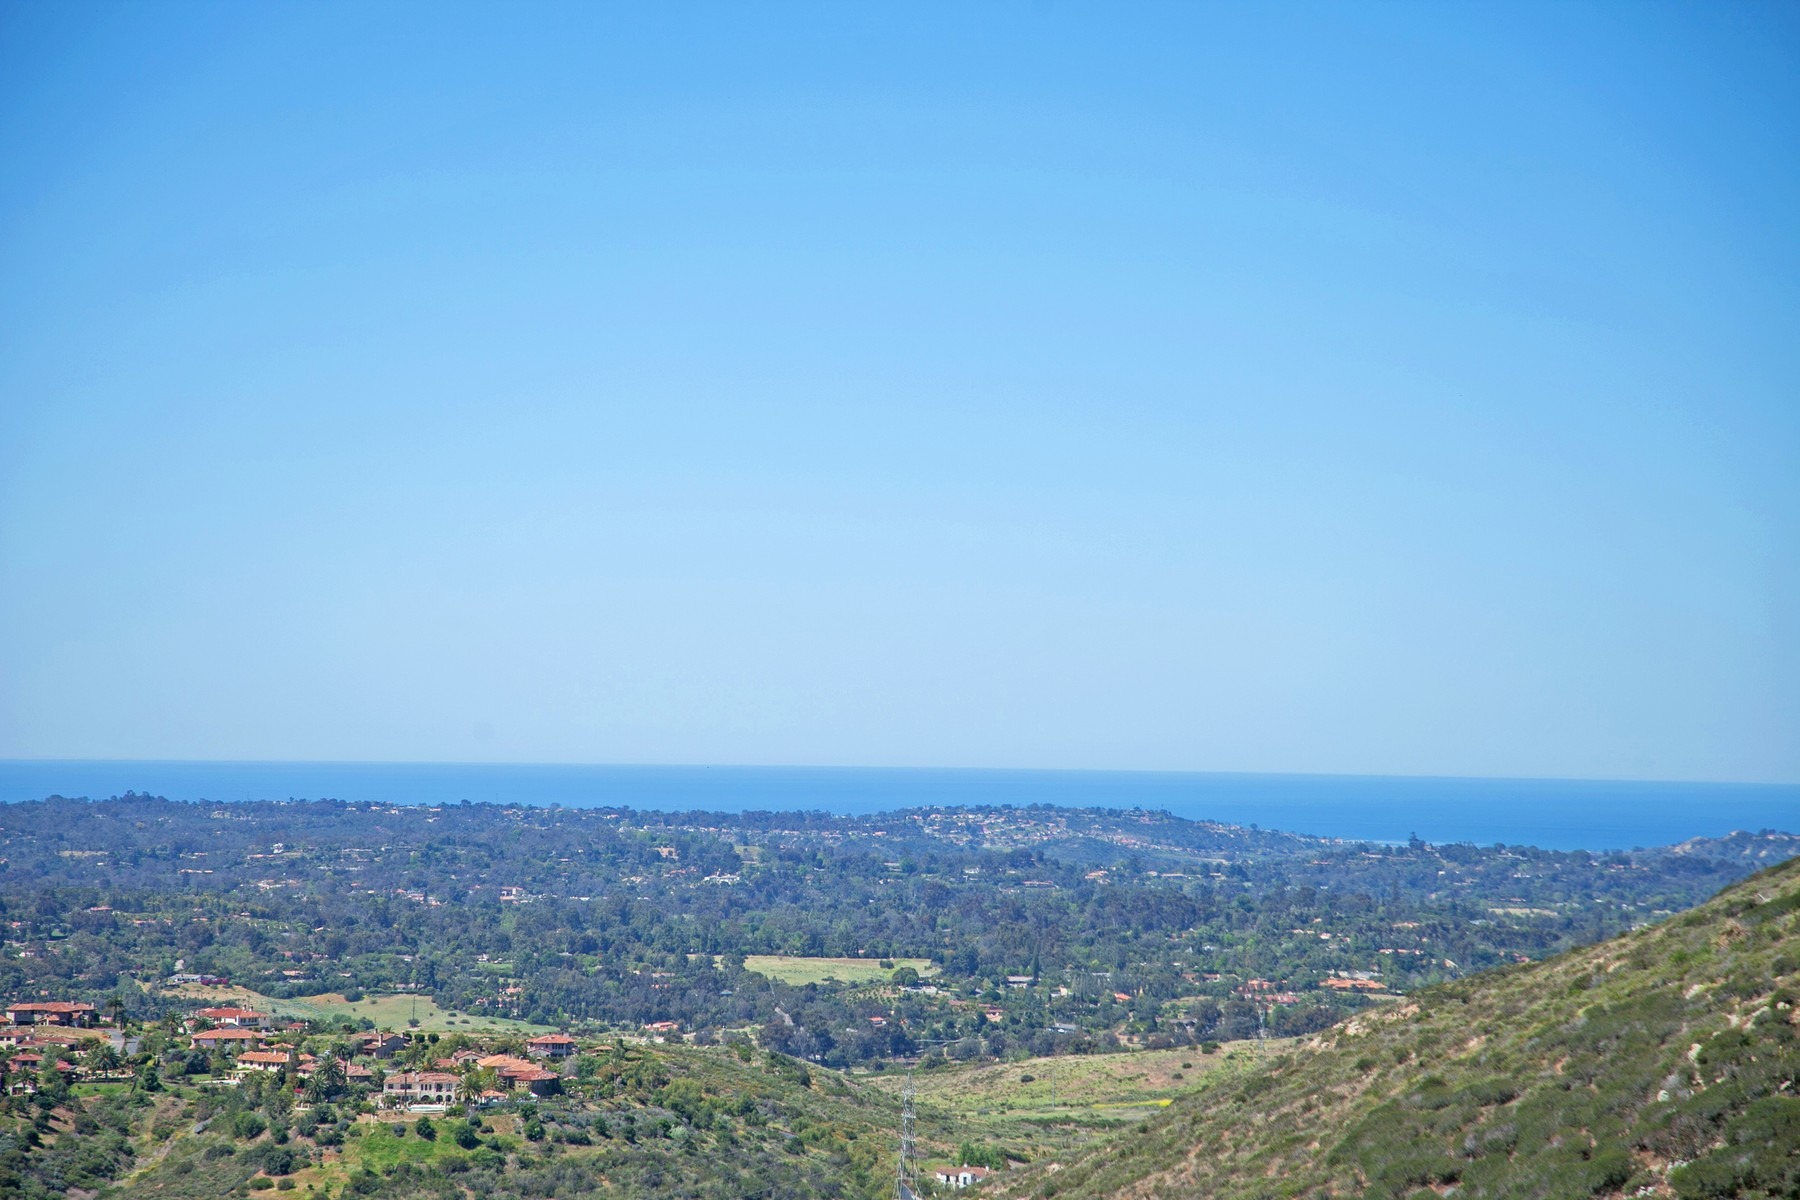 Land for Sale at El Brazo LOT 77 Rancho Santa Fe, California, 92067 United States